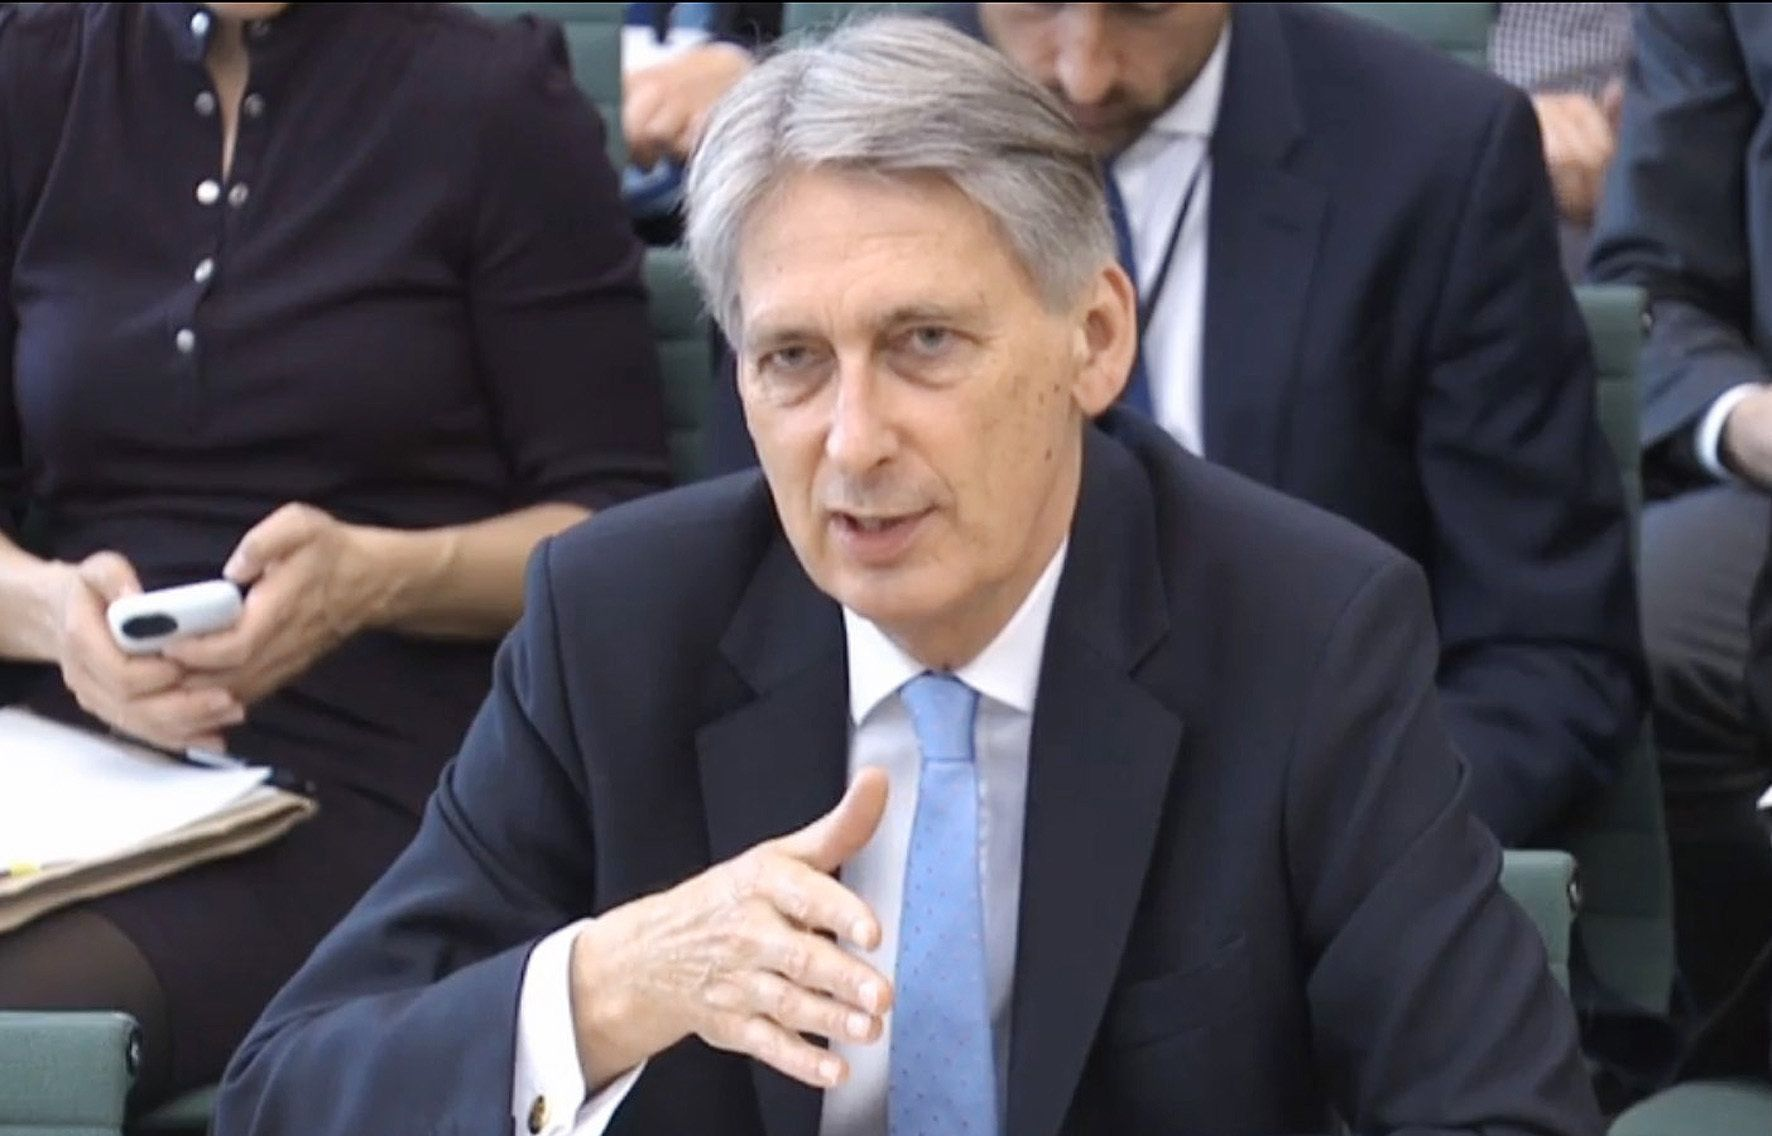 Theresa May should sack Philip Hammond, says former Tory chancellor Lord Lawson